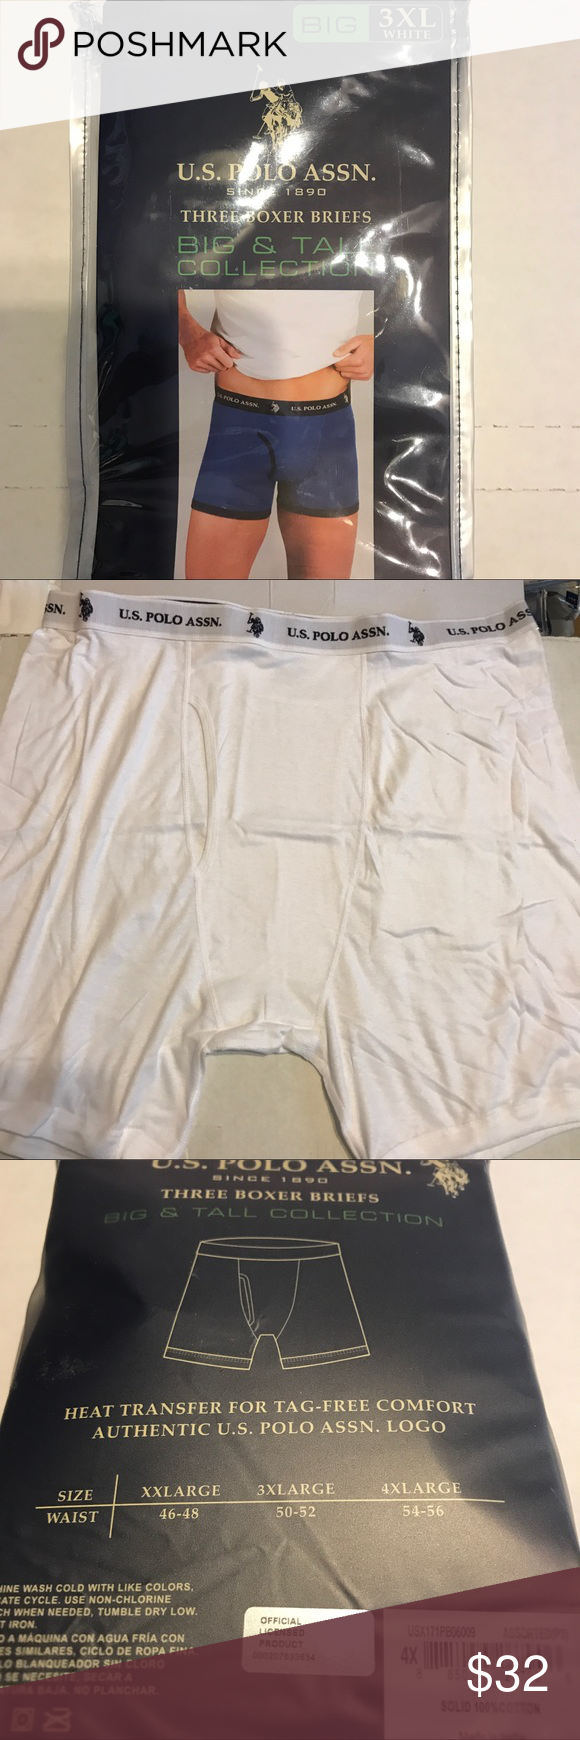 d6c160eb5437 U S Polo Assn Boxer Briefs 3XL White 3-pack U. S. Polo Assn. Big 3XL size  Mens White Boxer Briefs. 100% cotton. See photo of size chart.